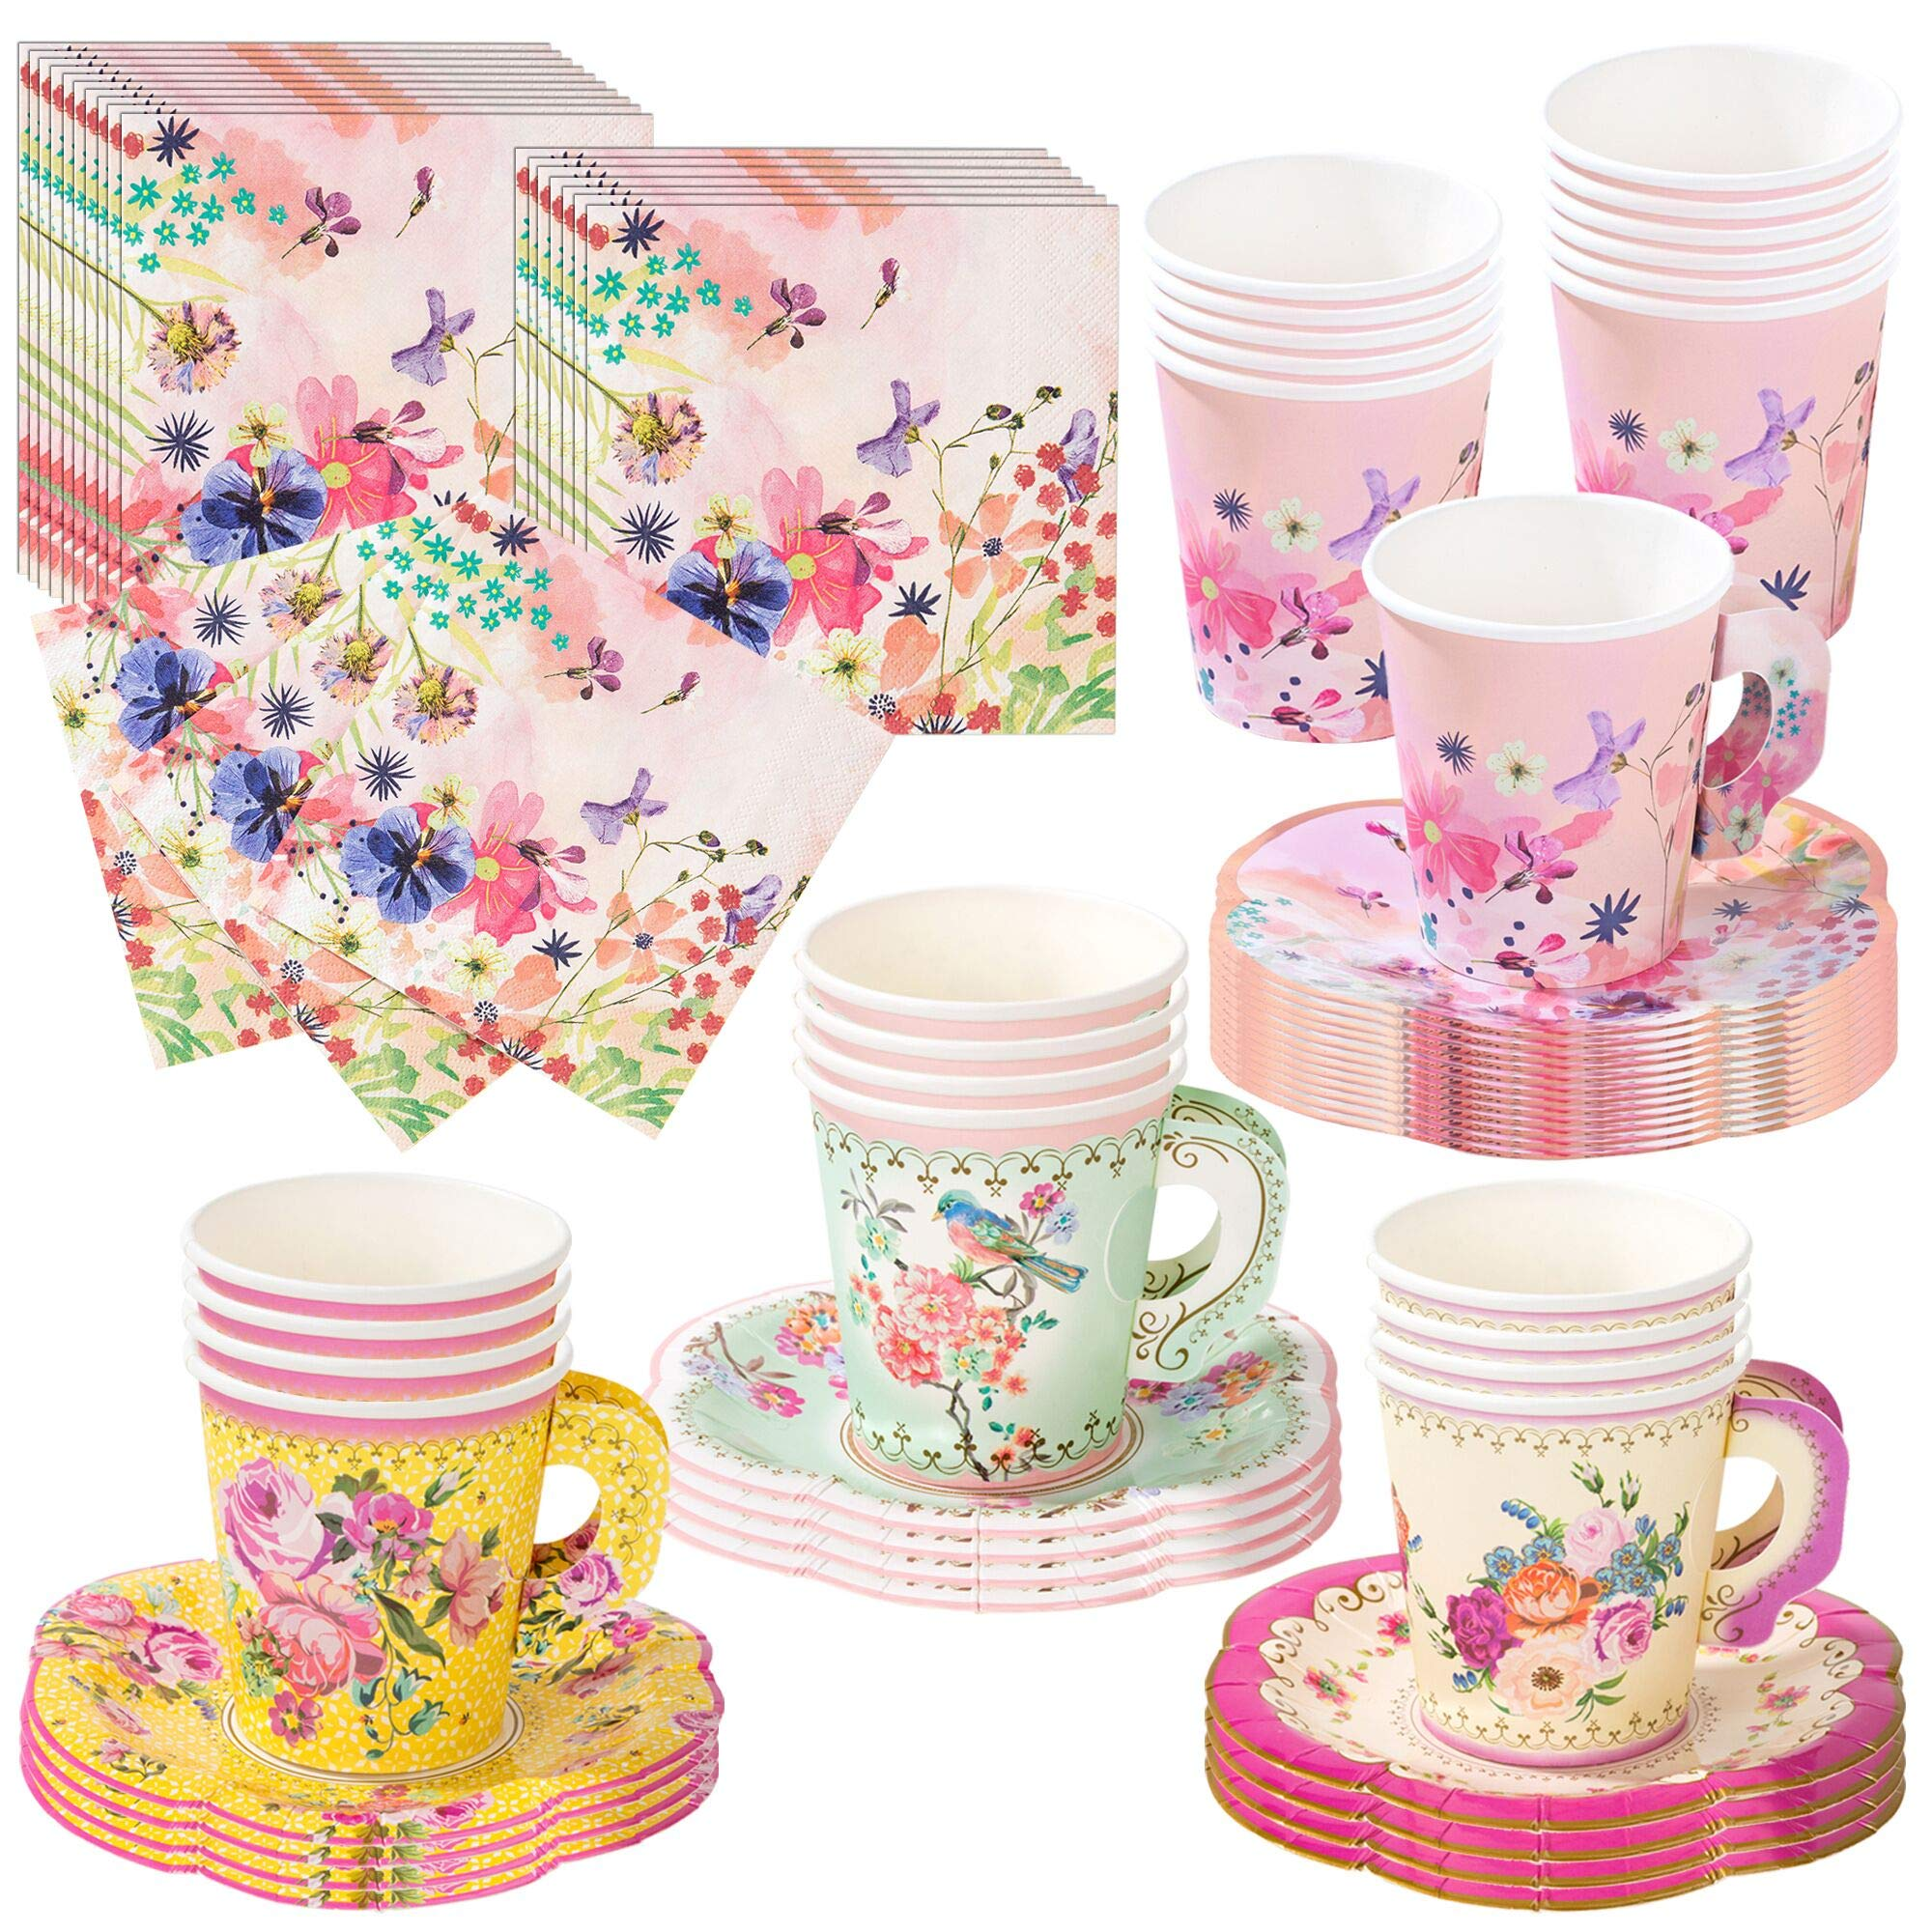 Talking Tables Vintage Tea Party Supplies | Vintage Floral Napkins & Tea Cups with Saucer Sets | Also Great for Wedding Parties, Bridal Shower, Baby Shower and Birthday Party